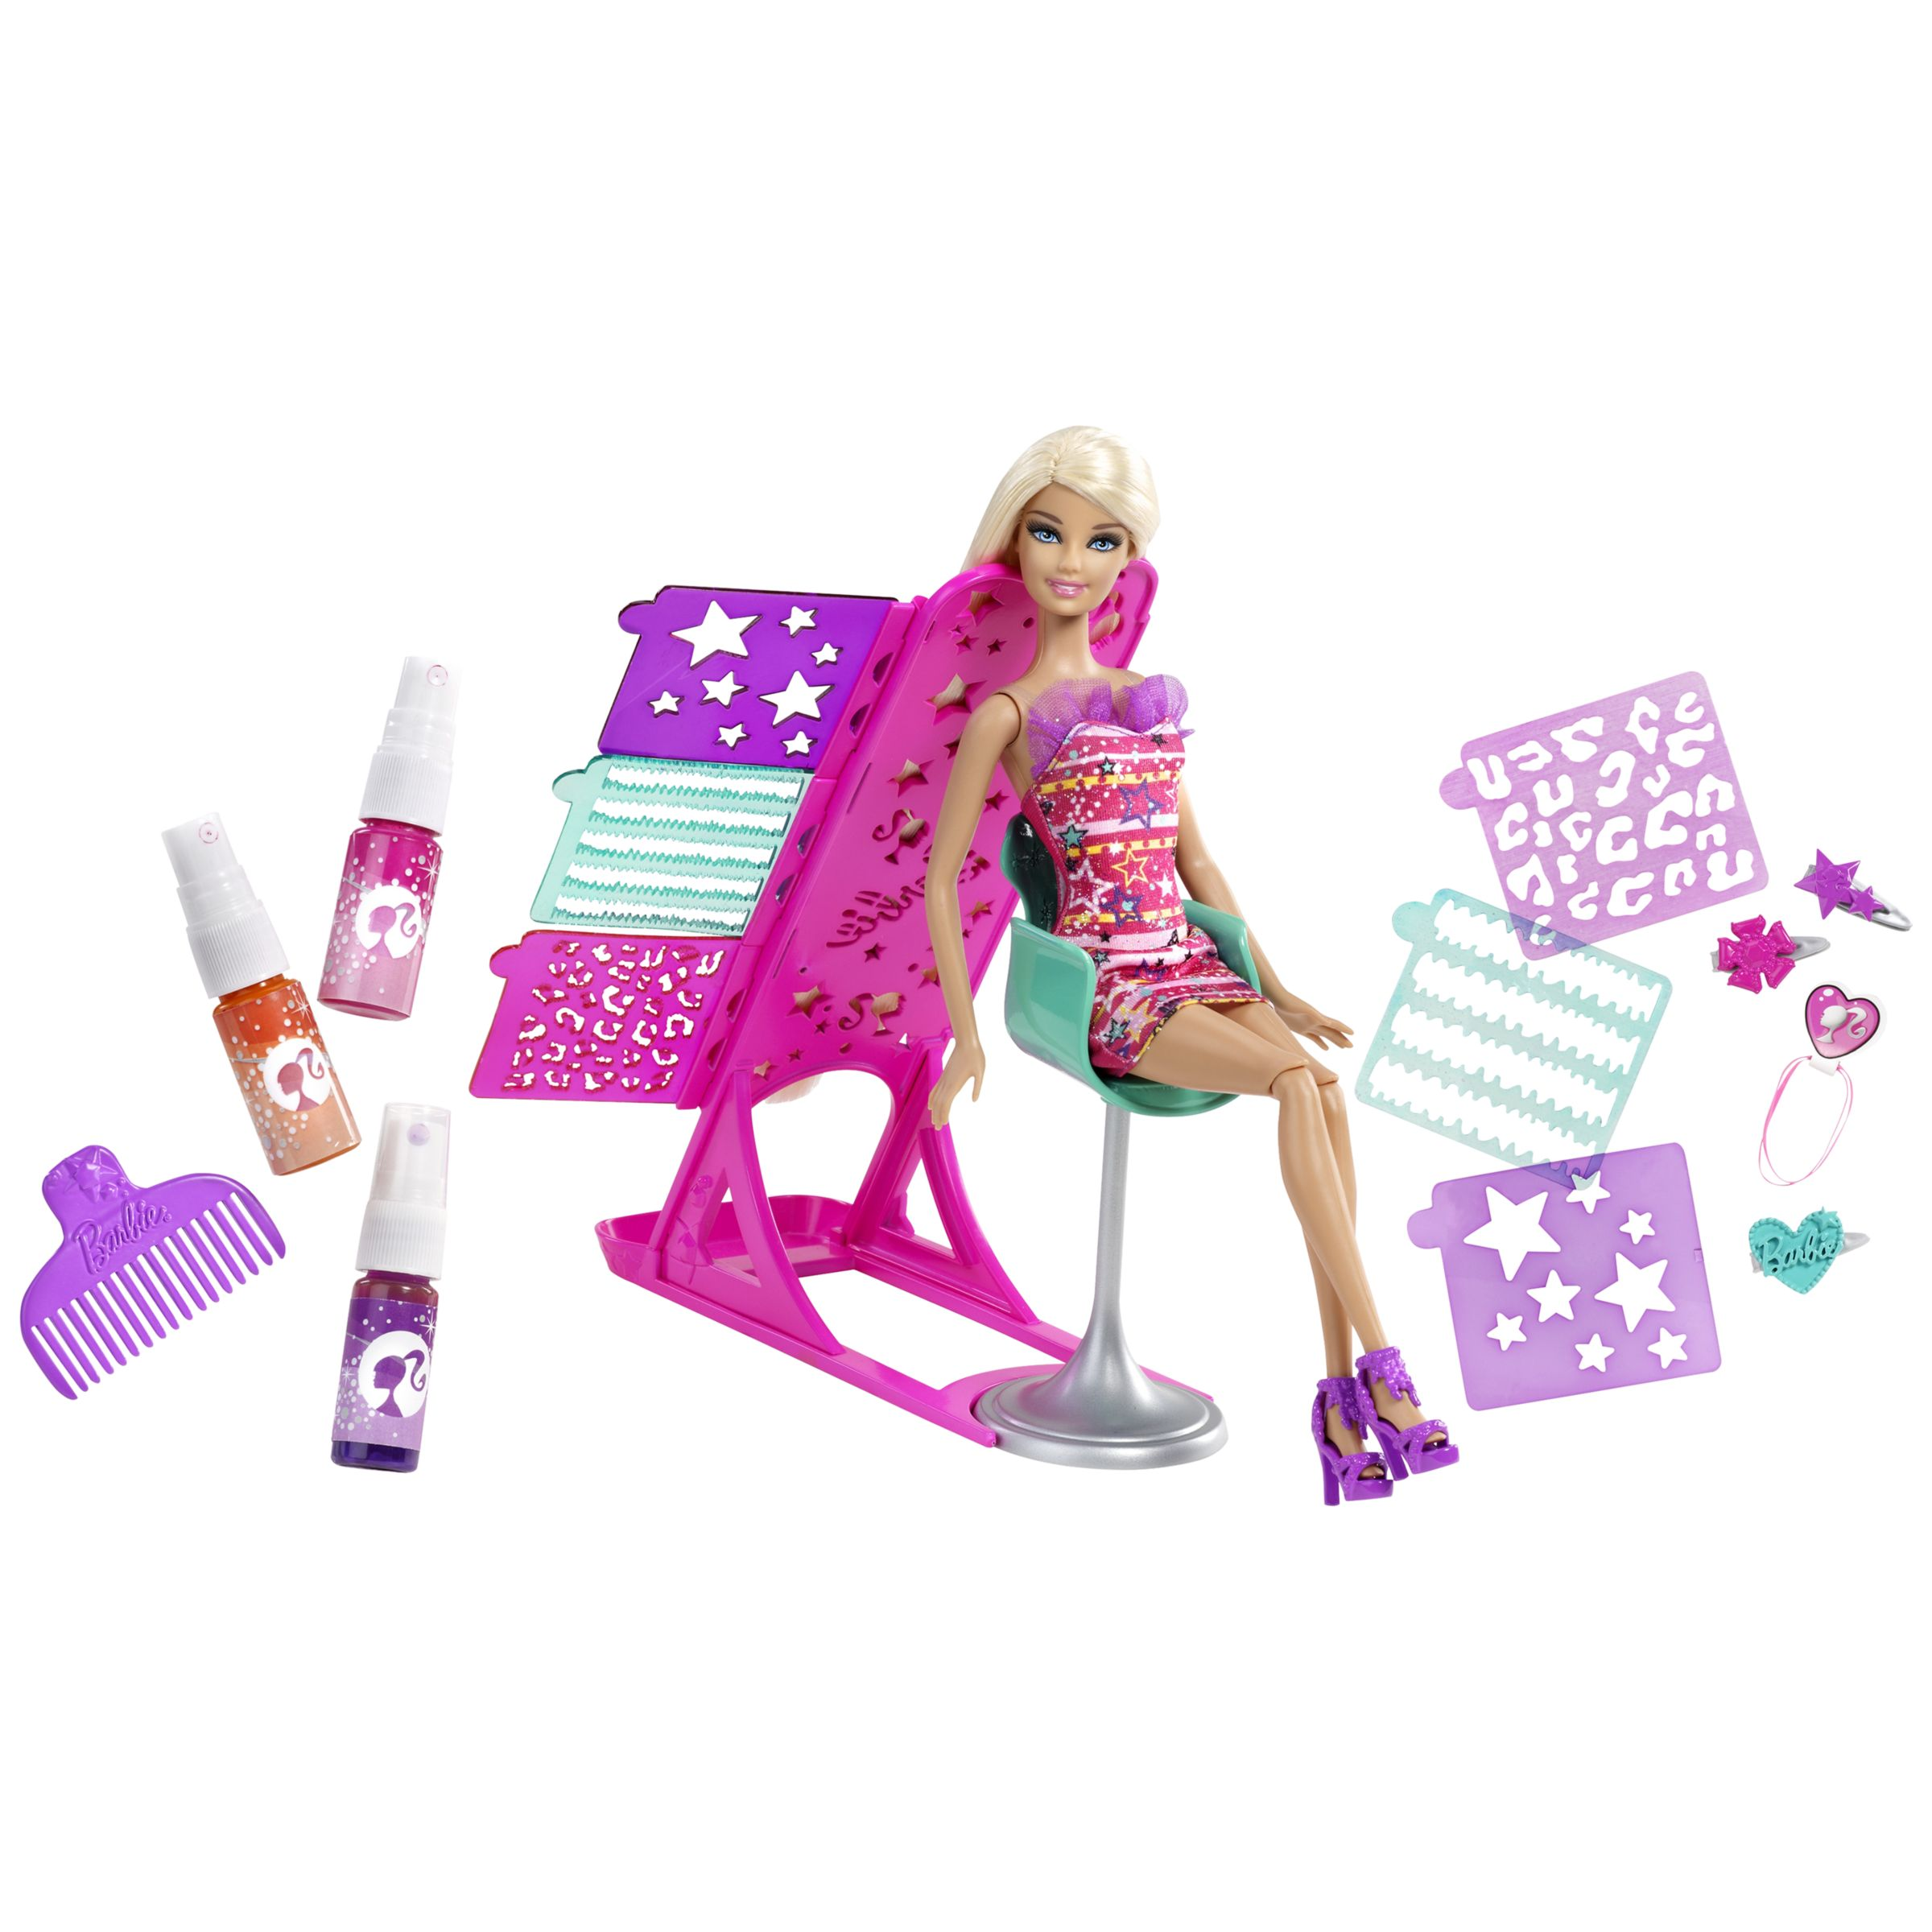 Barbie Hair Artist Doll